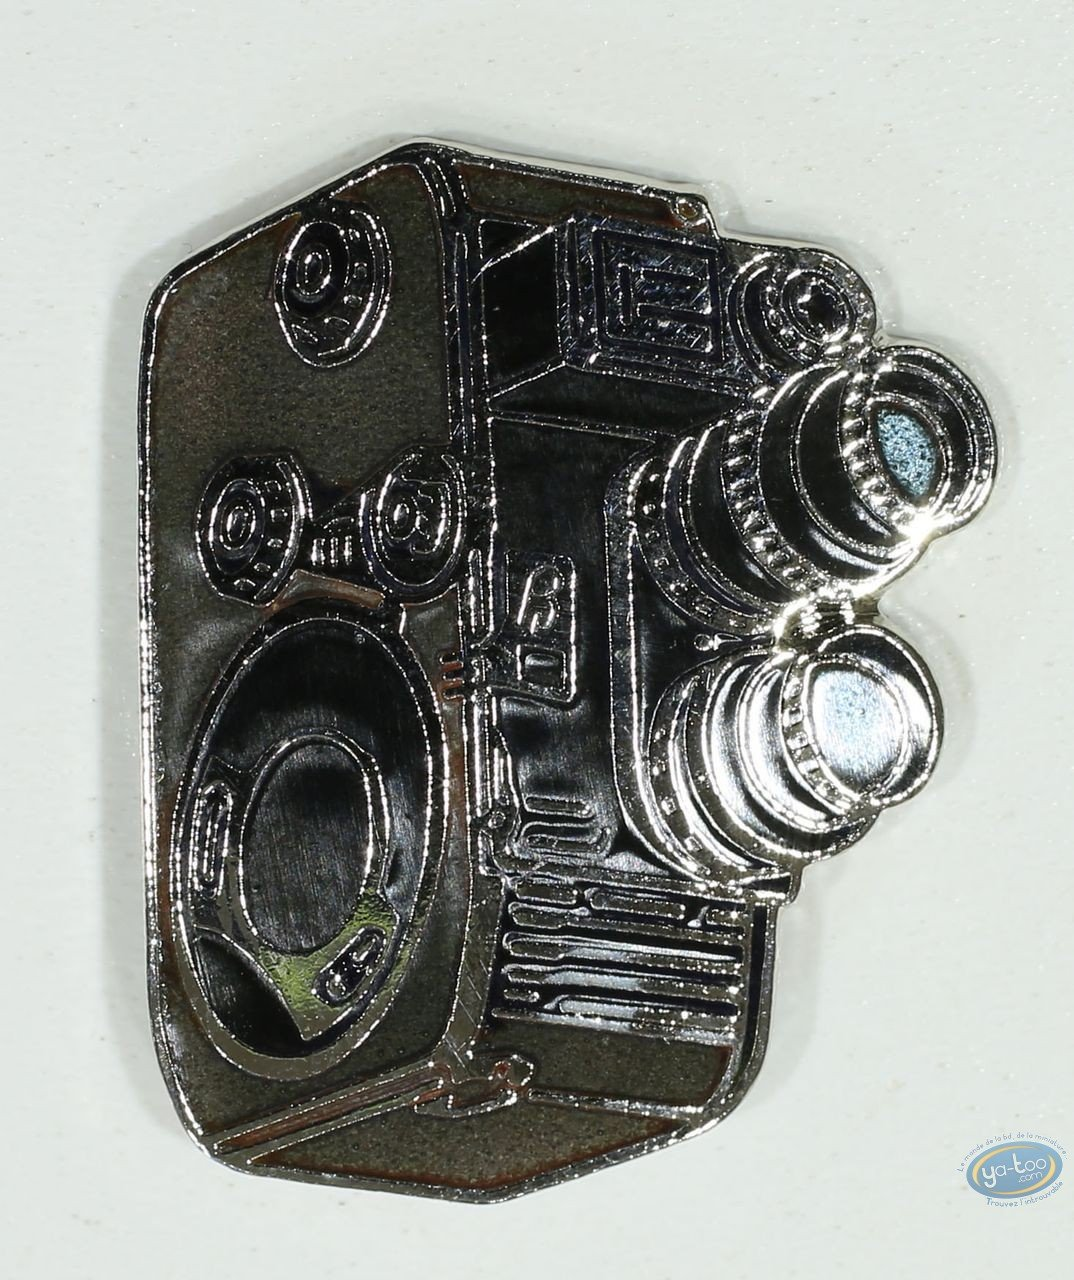 Pin's, Camera with double vertical objectives